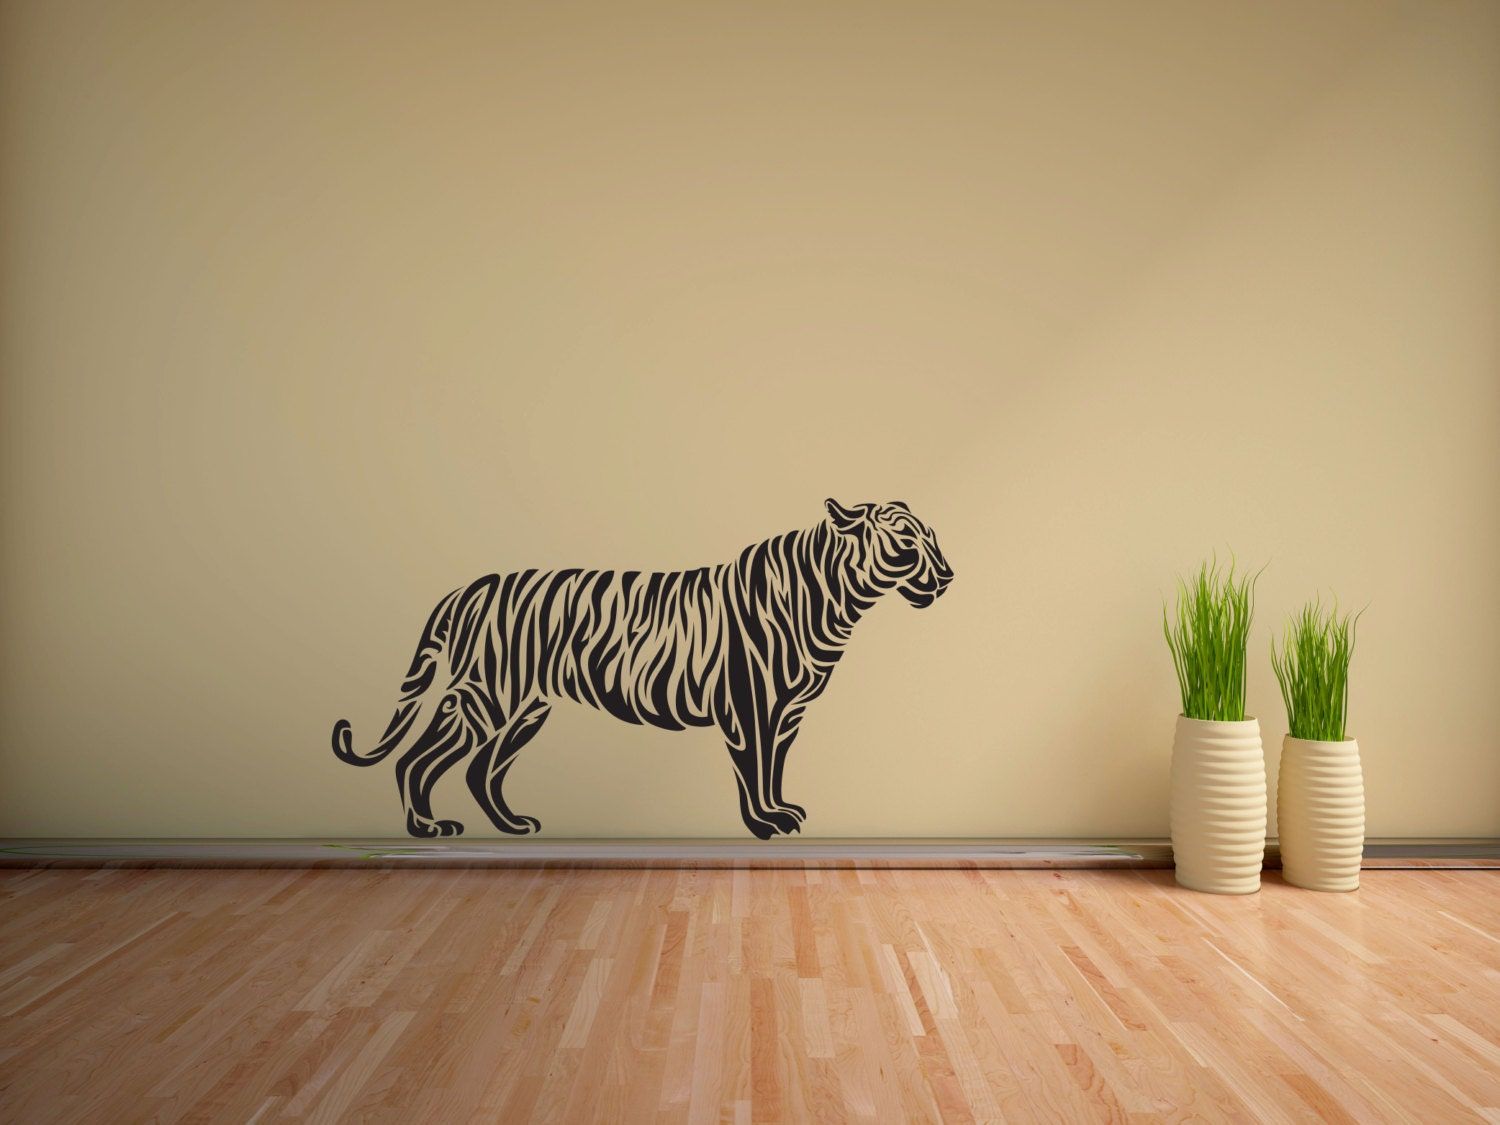 Tiger Wall Vinyl Tribal Tiger Art Wild Cat Wall Decal Decor